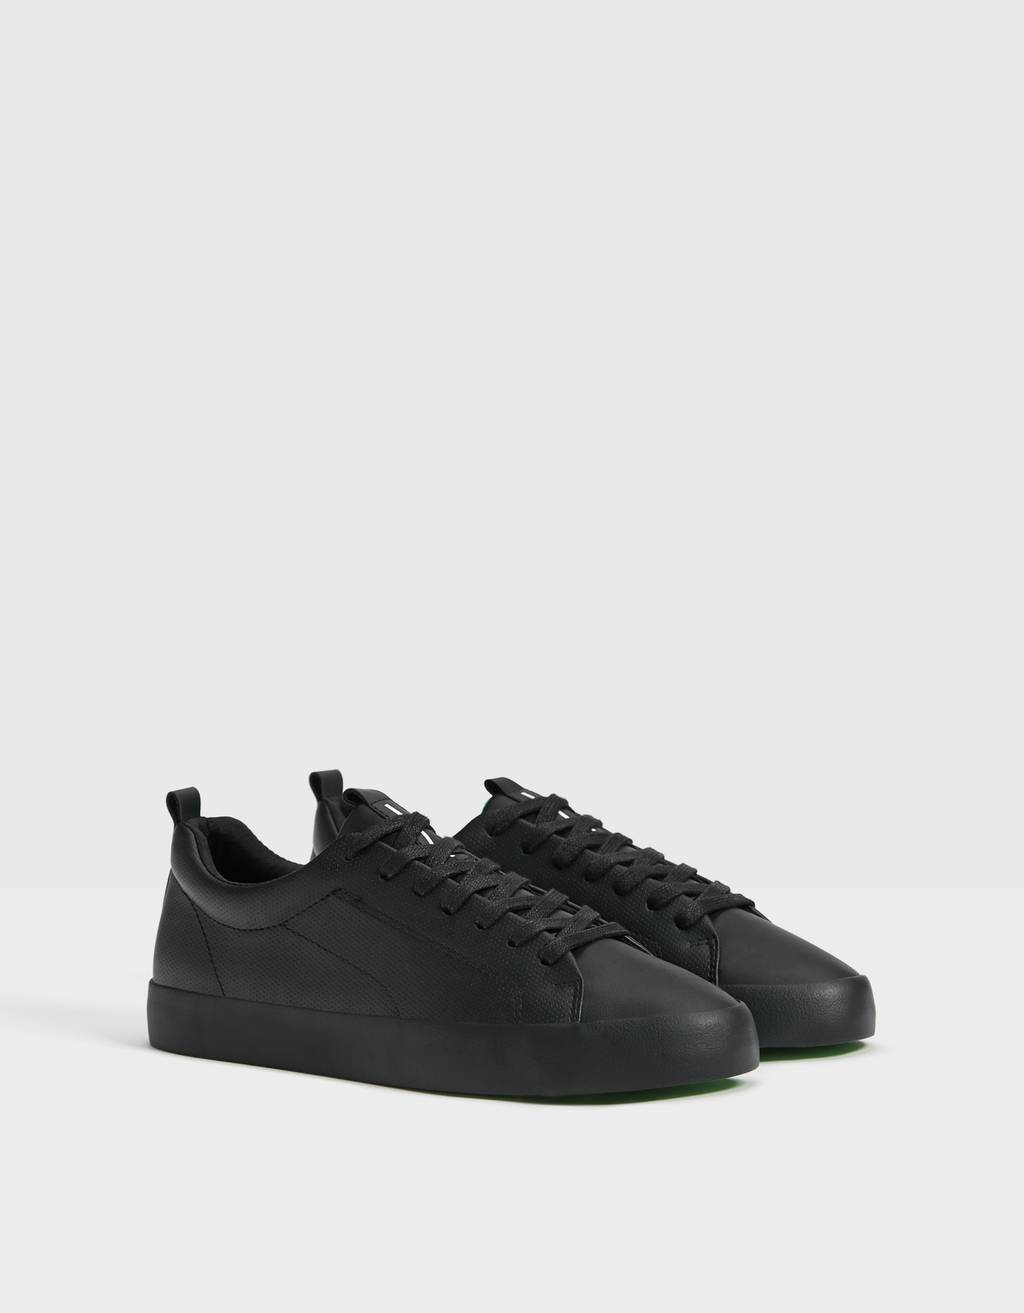 Men's trainers with neon detail